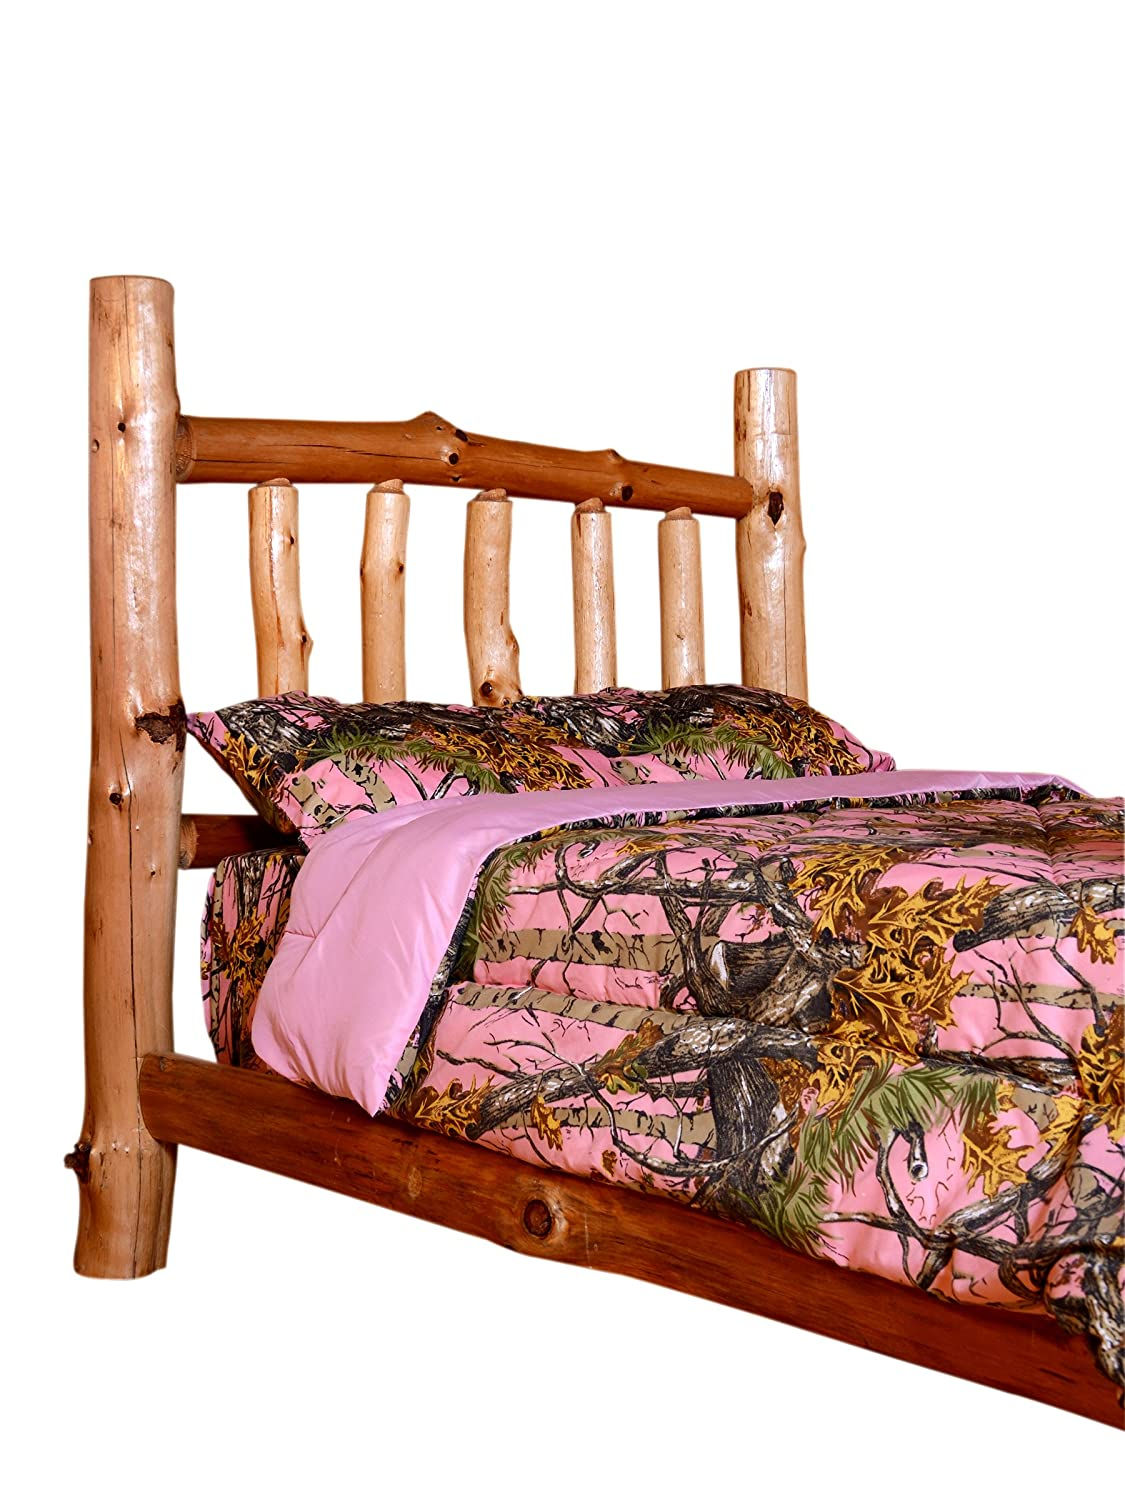 bed trading baby crib bedding sets camouflage pcs set piece camo comforter pink